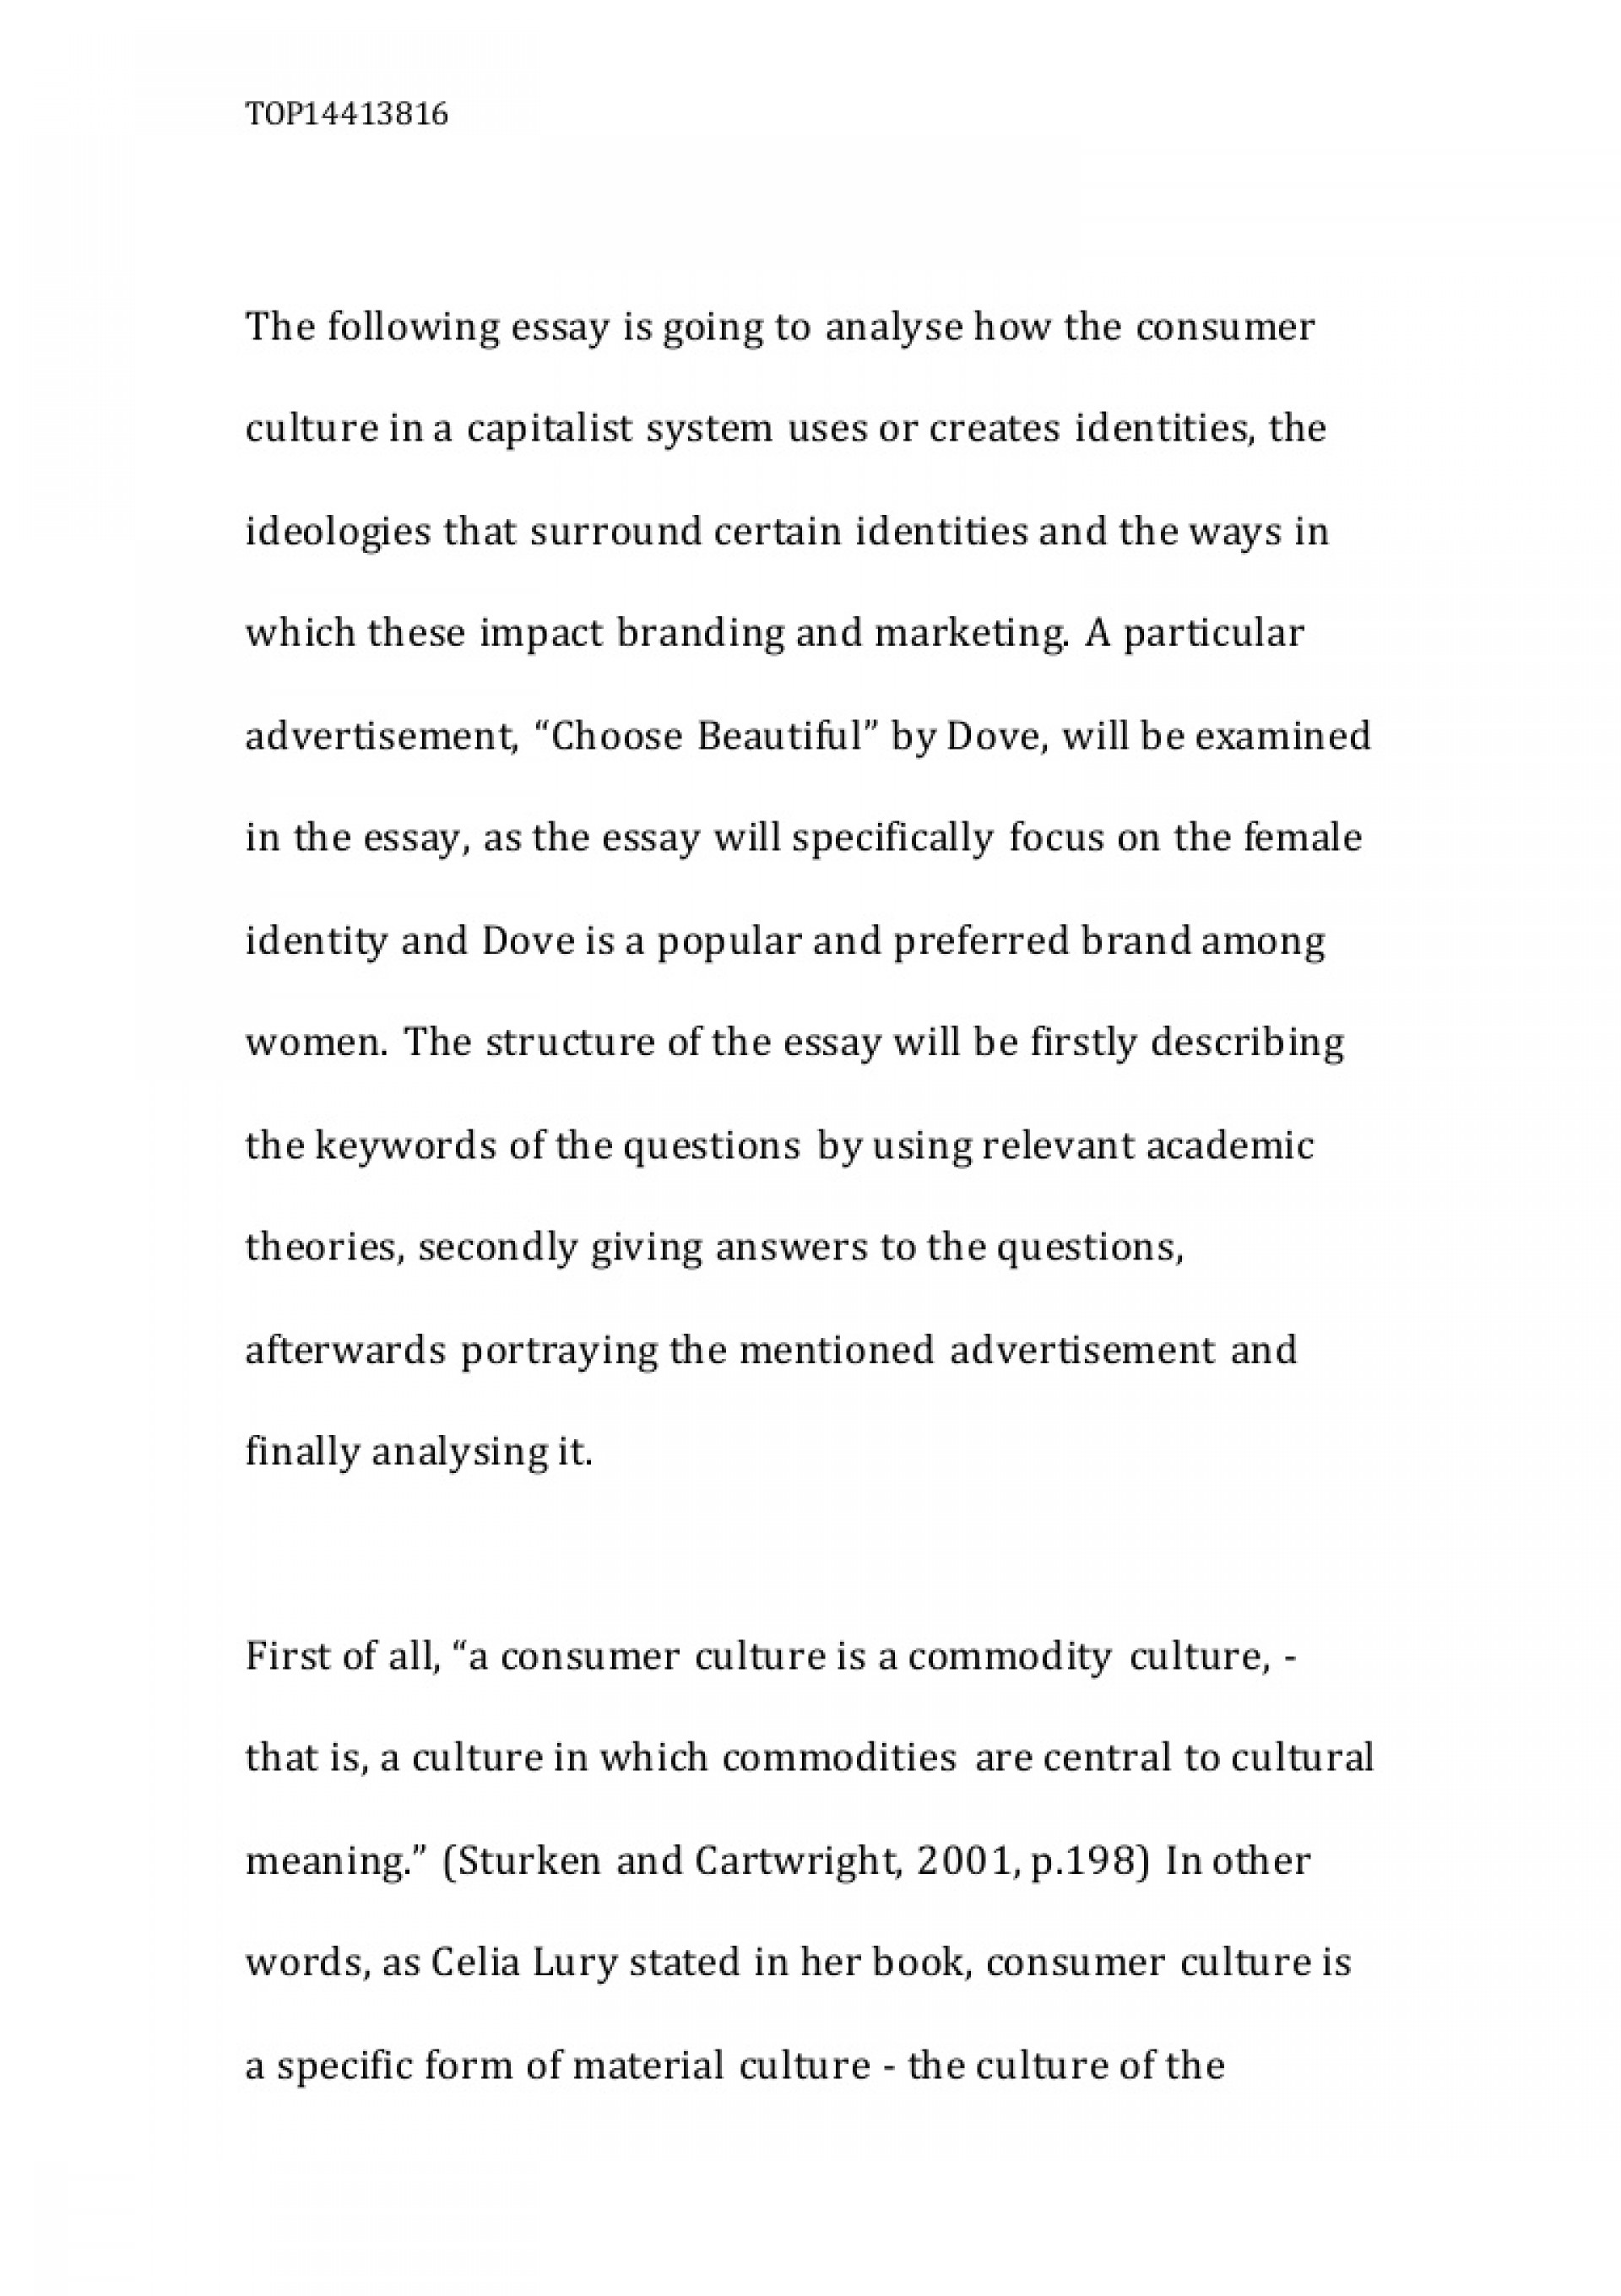 003 Lva1 App6892 Thumbnail Essay About Culture Dreaded On Indian And Society Celebrating Arts Through Reading 1920